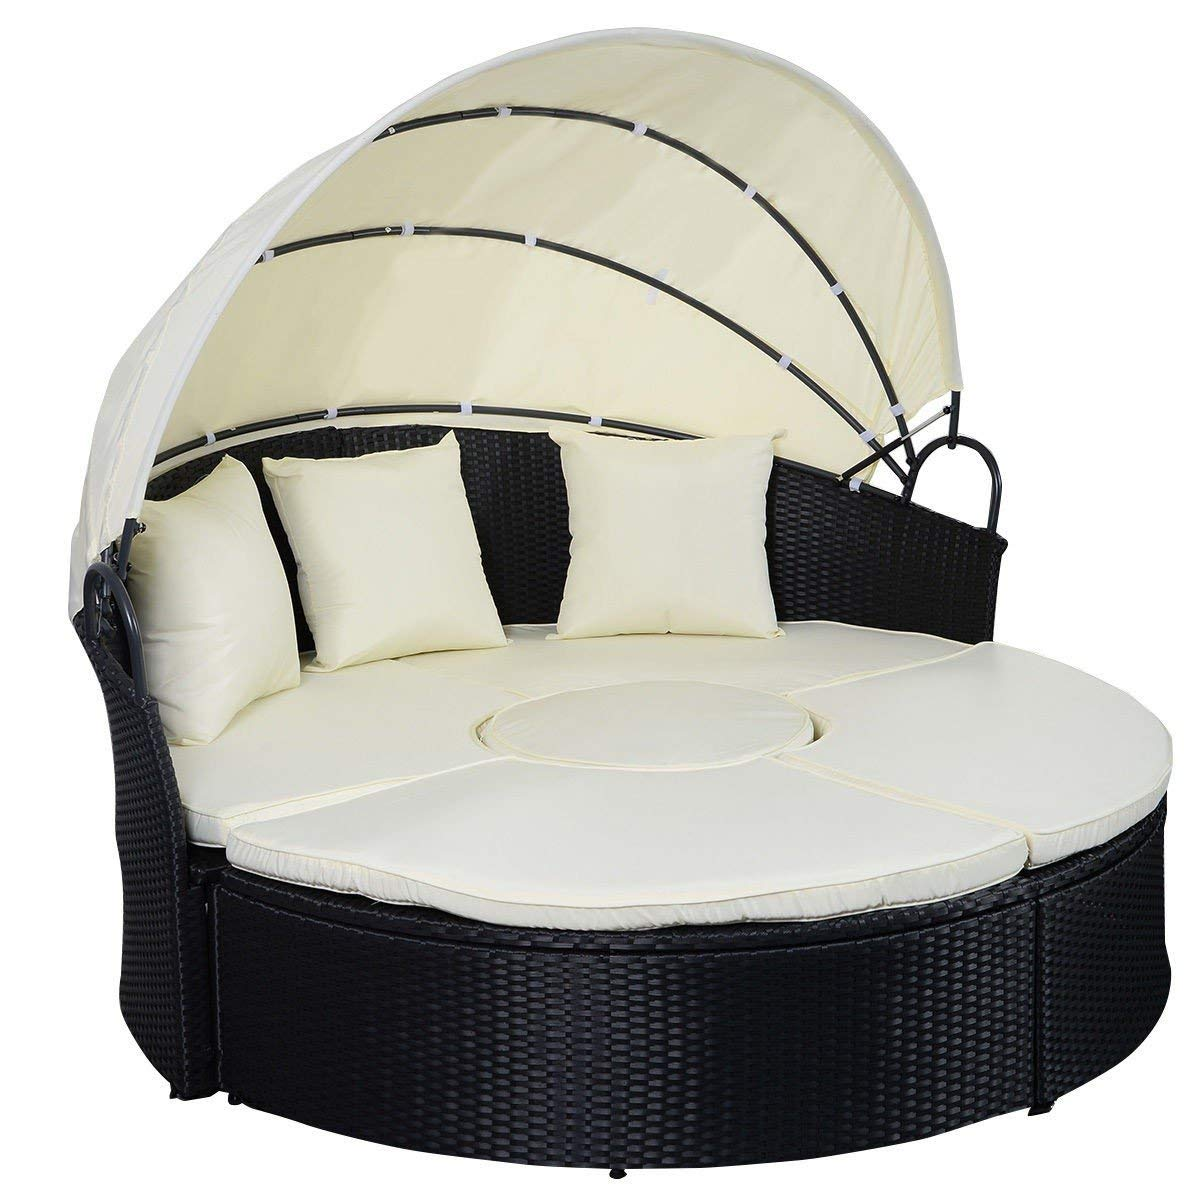 Svitlife 2-in-1 Outdoor Patio Rattan Round Retractable Canopy Daybed Outdoor Patio Sofa Round Retractable